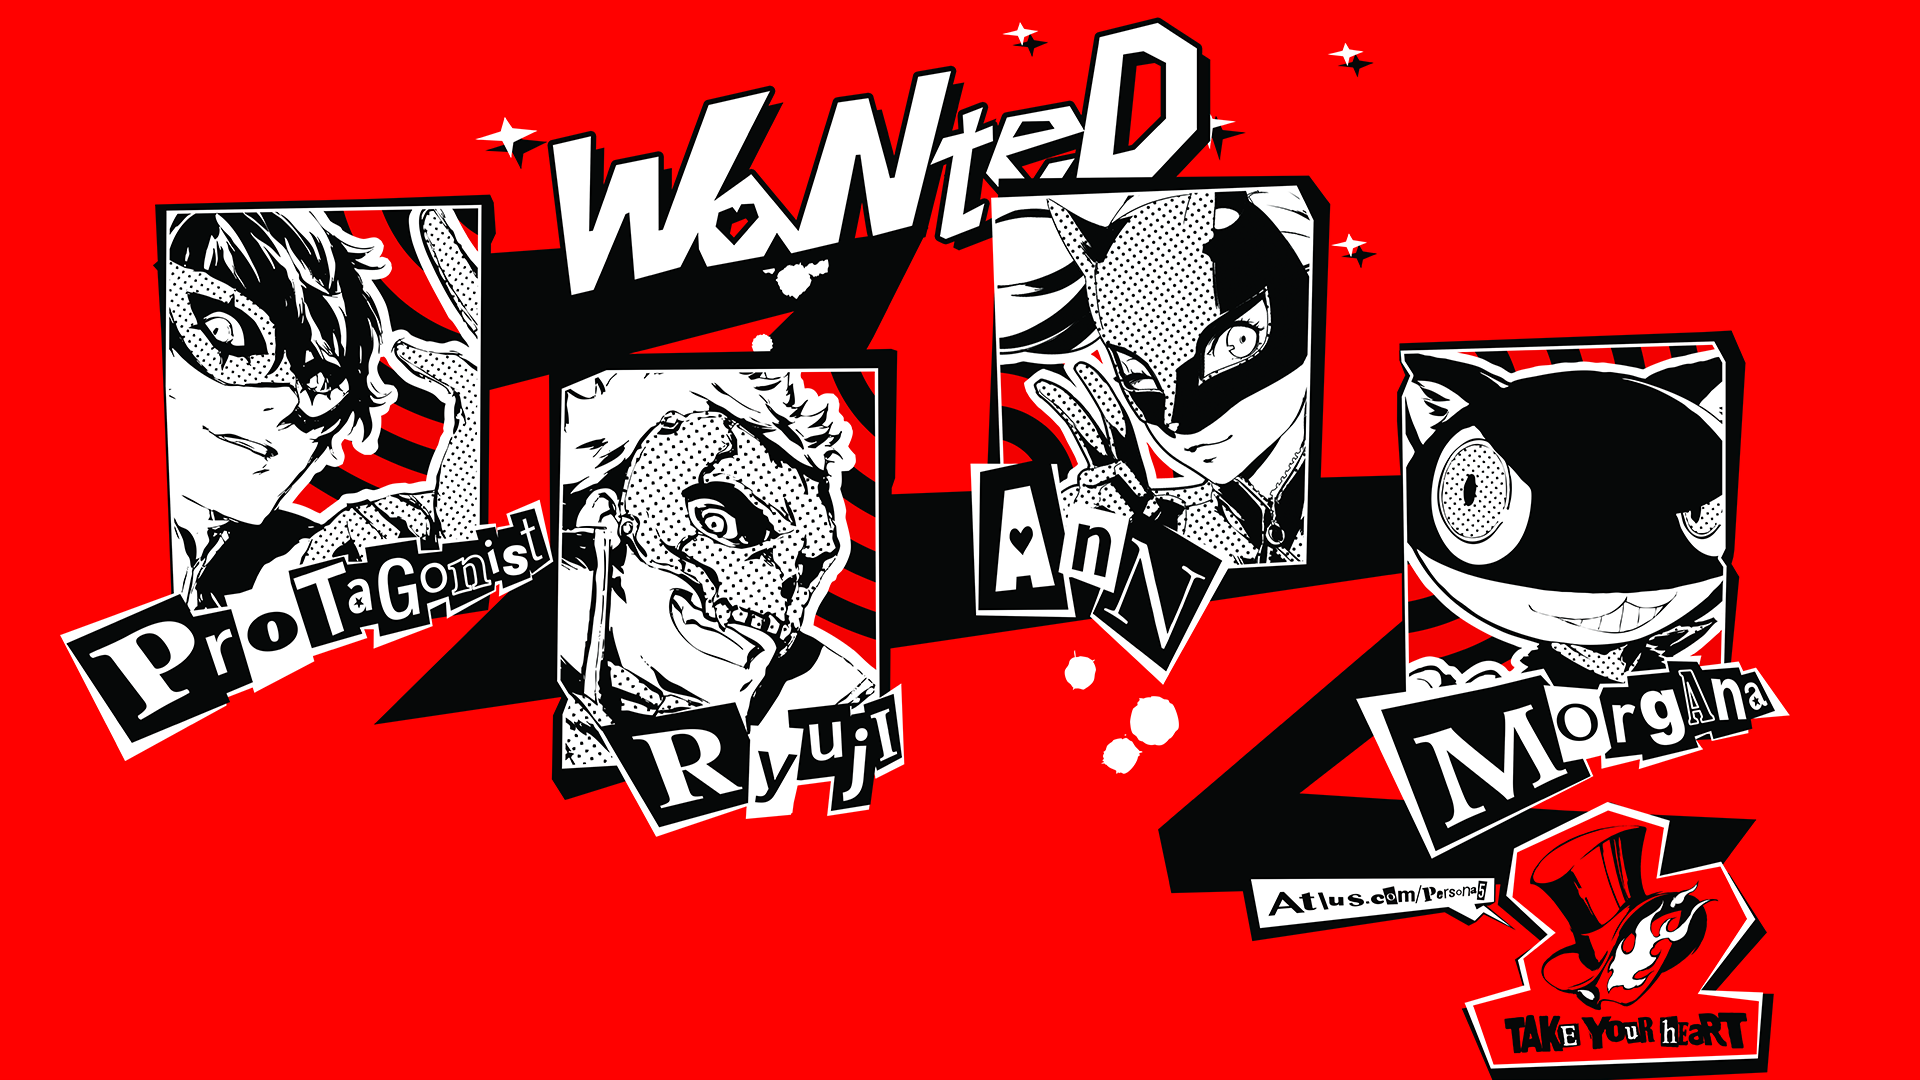 Persona 5 English Voice Cast List Is Out Gameranx Along with the bulbous i dots, commas, and such. persona 5 english voice cast list is